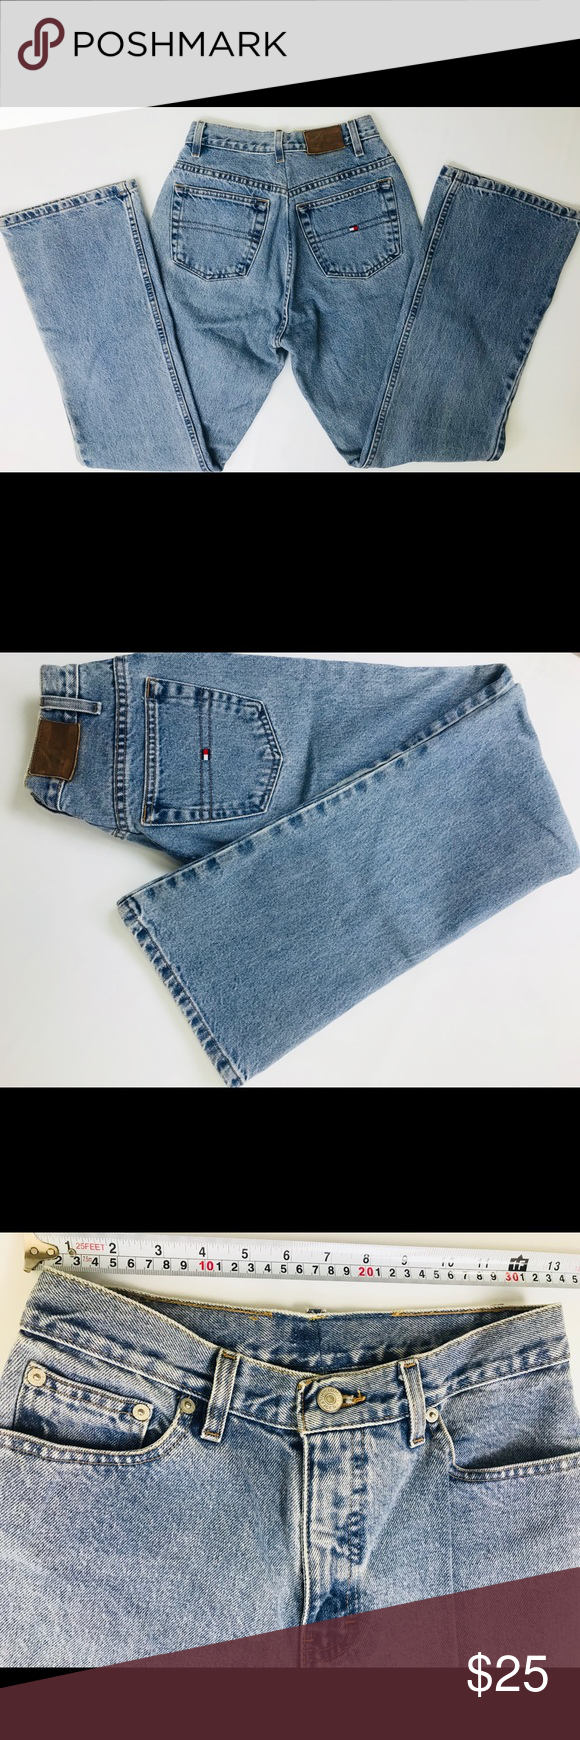 Tommy Hilfiger Jeans with used look, black